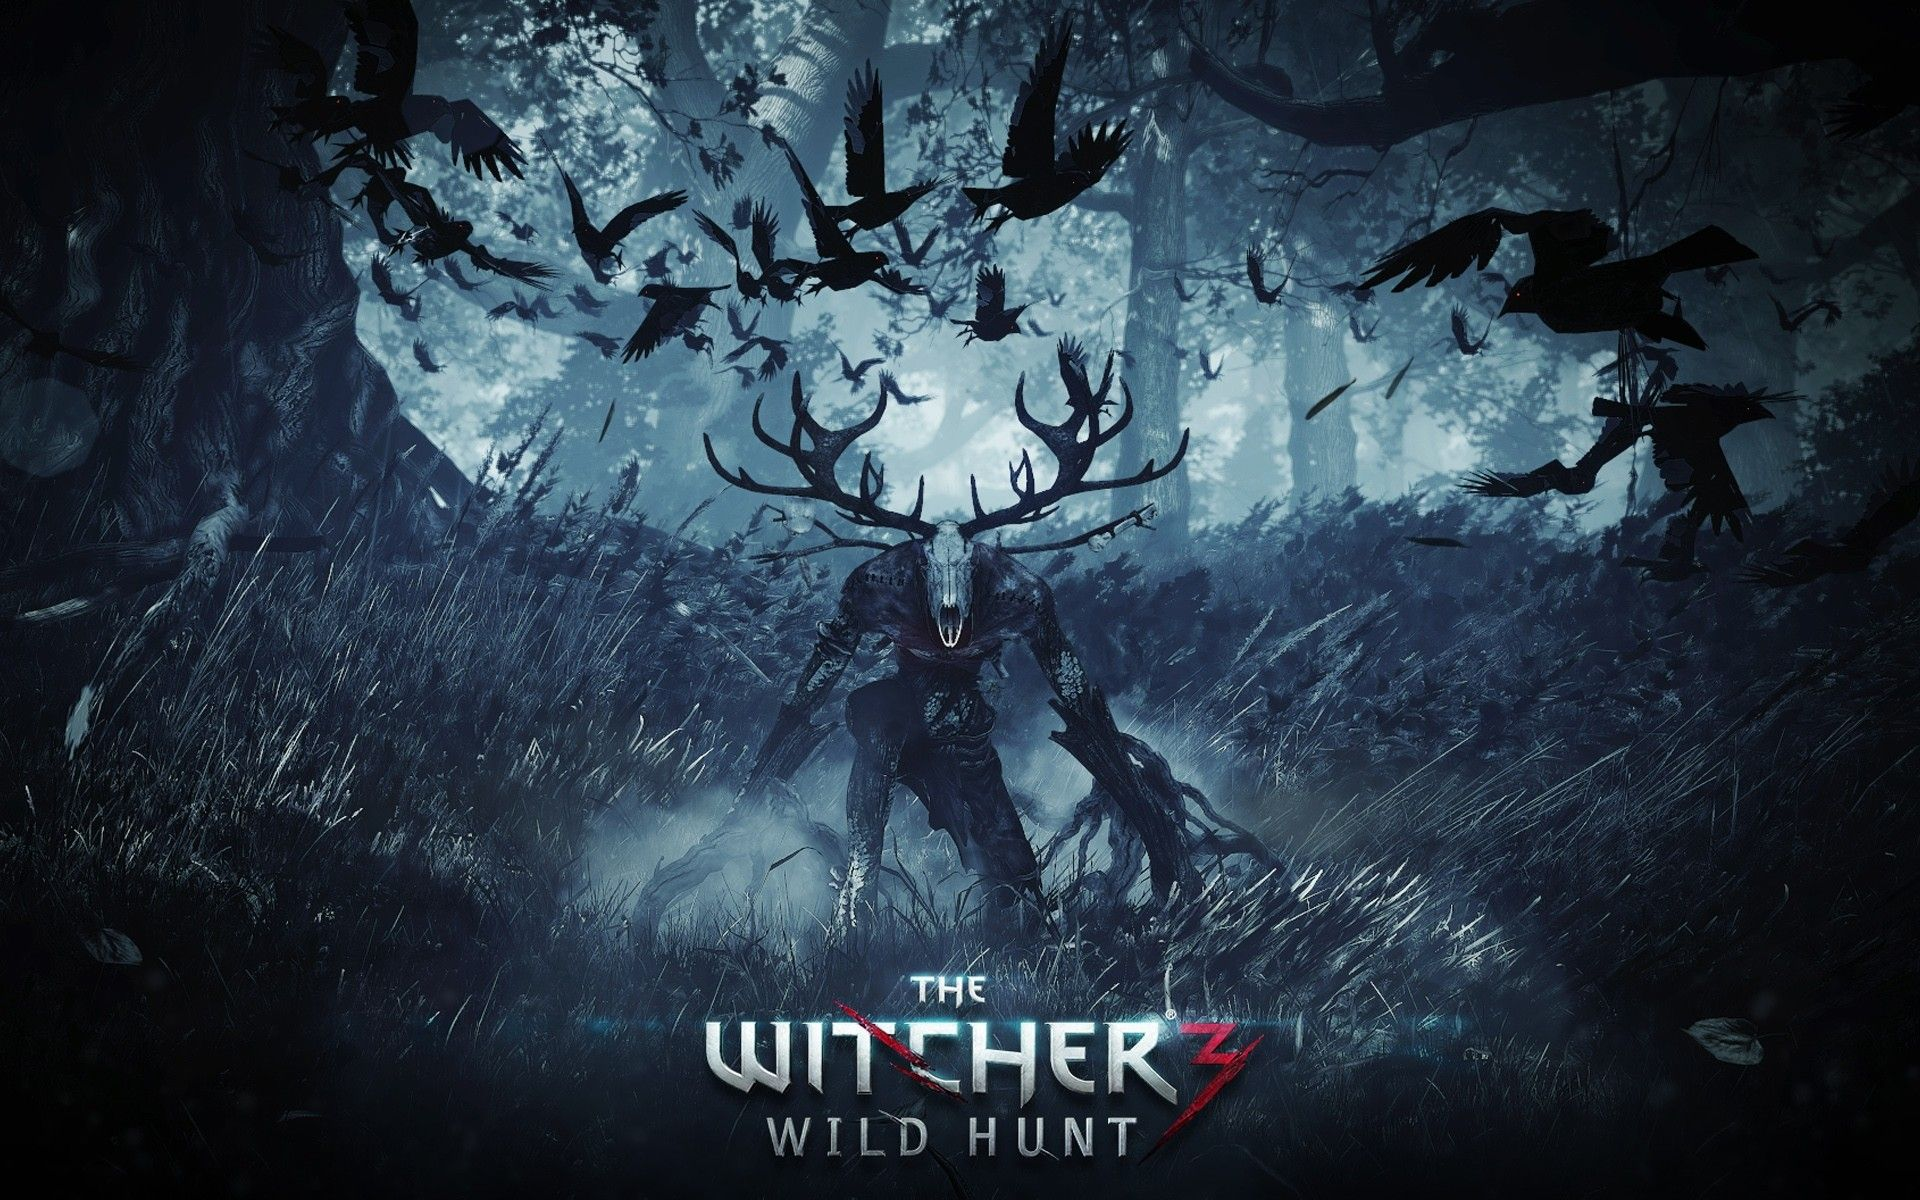 The Witcher Iii Wild Hunt E3 Trailer The Witcher Wild Hunt The